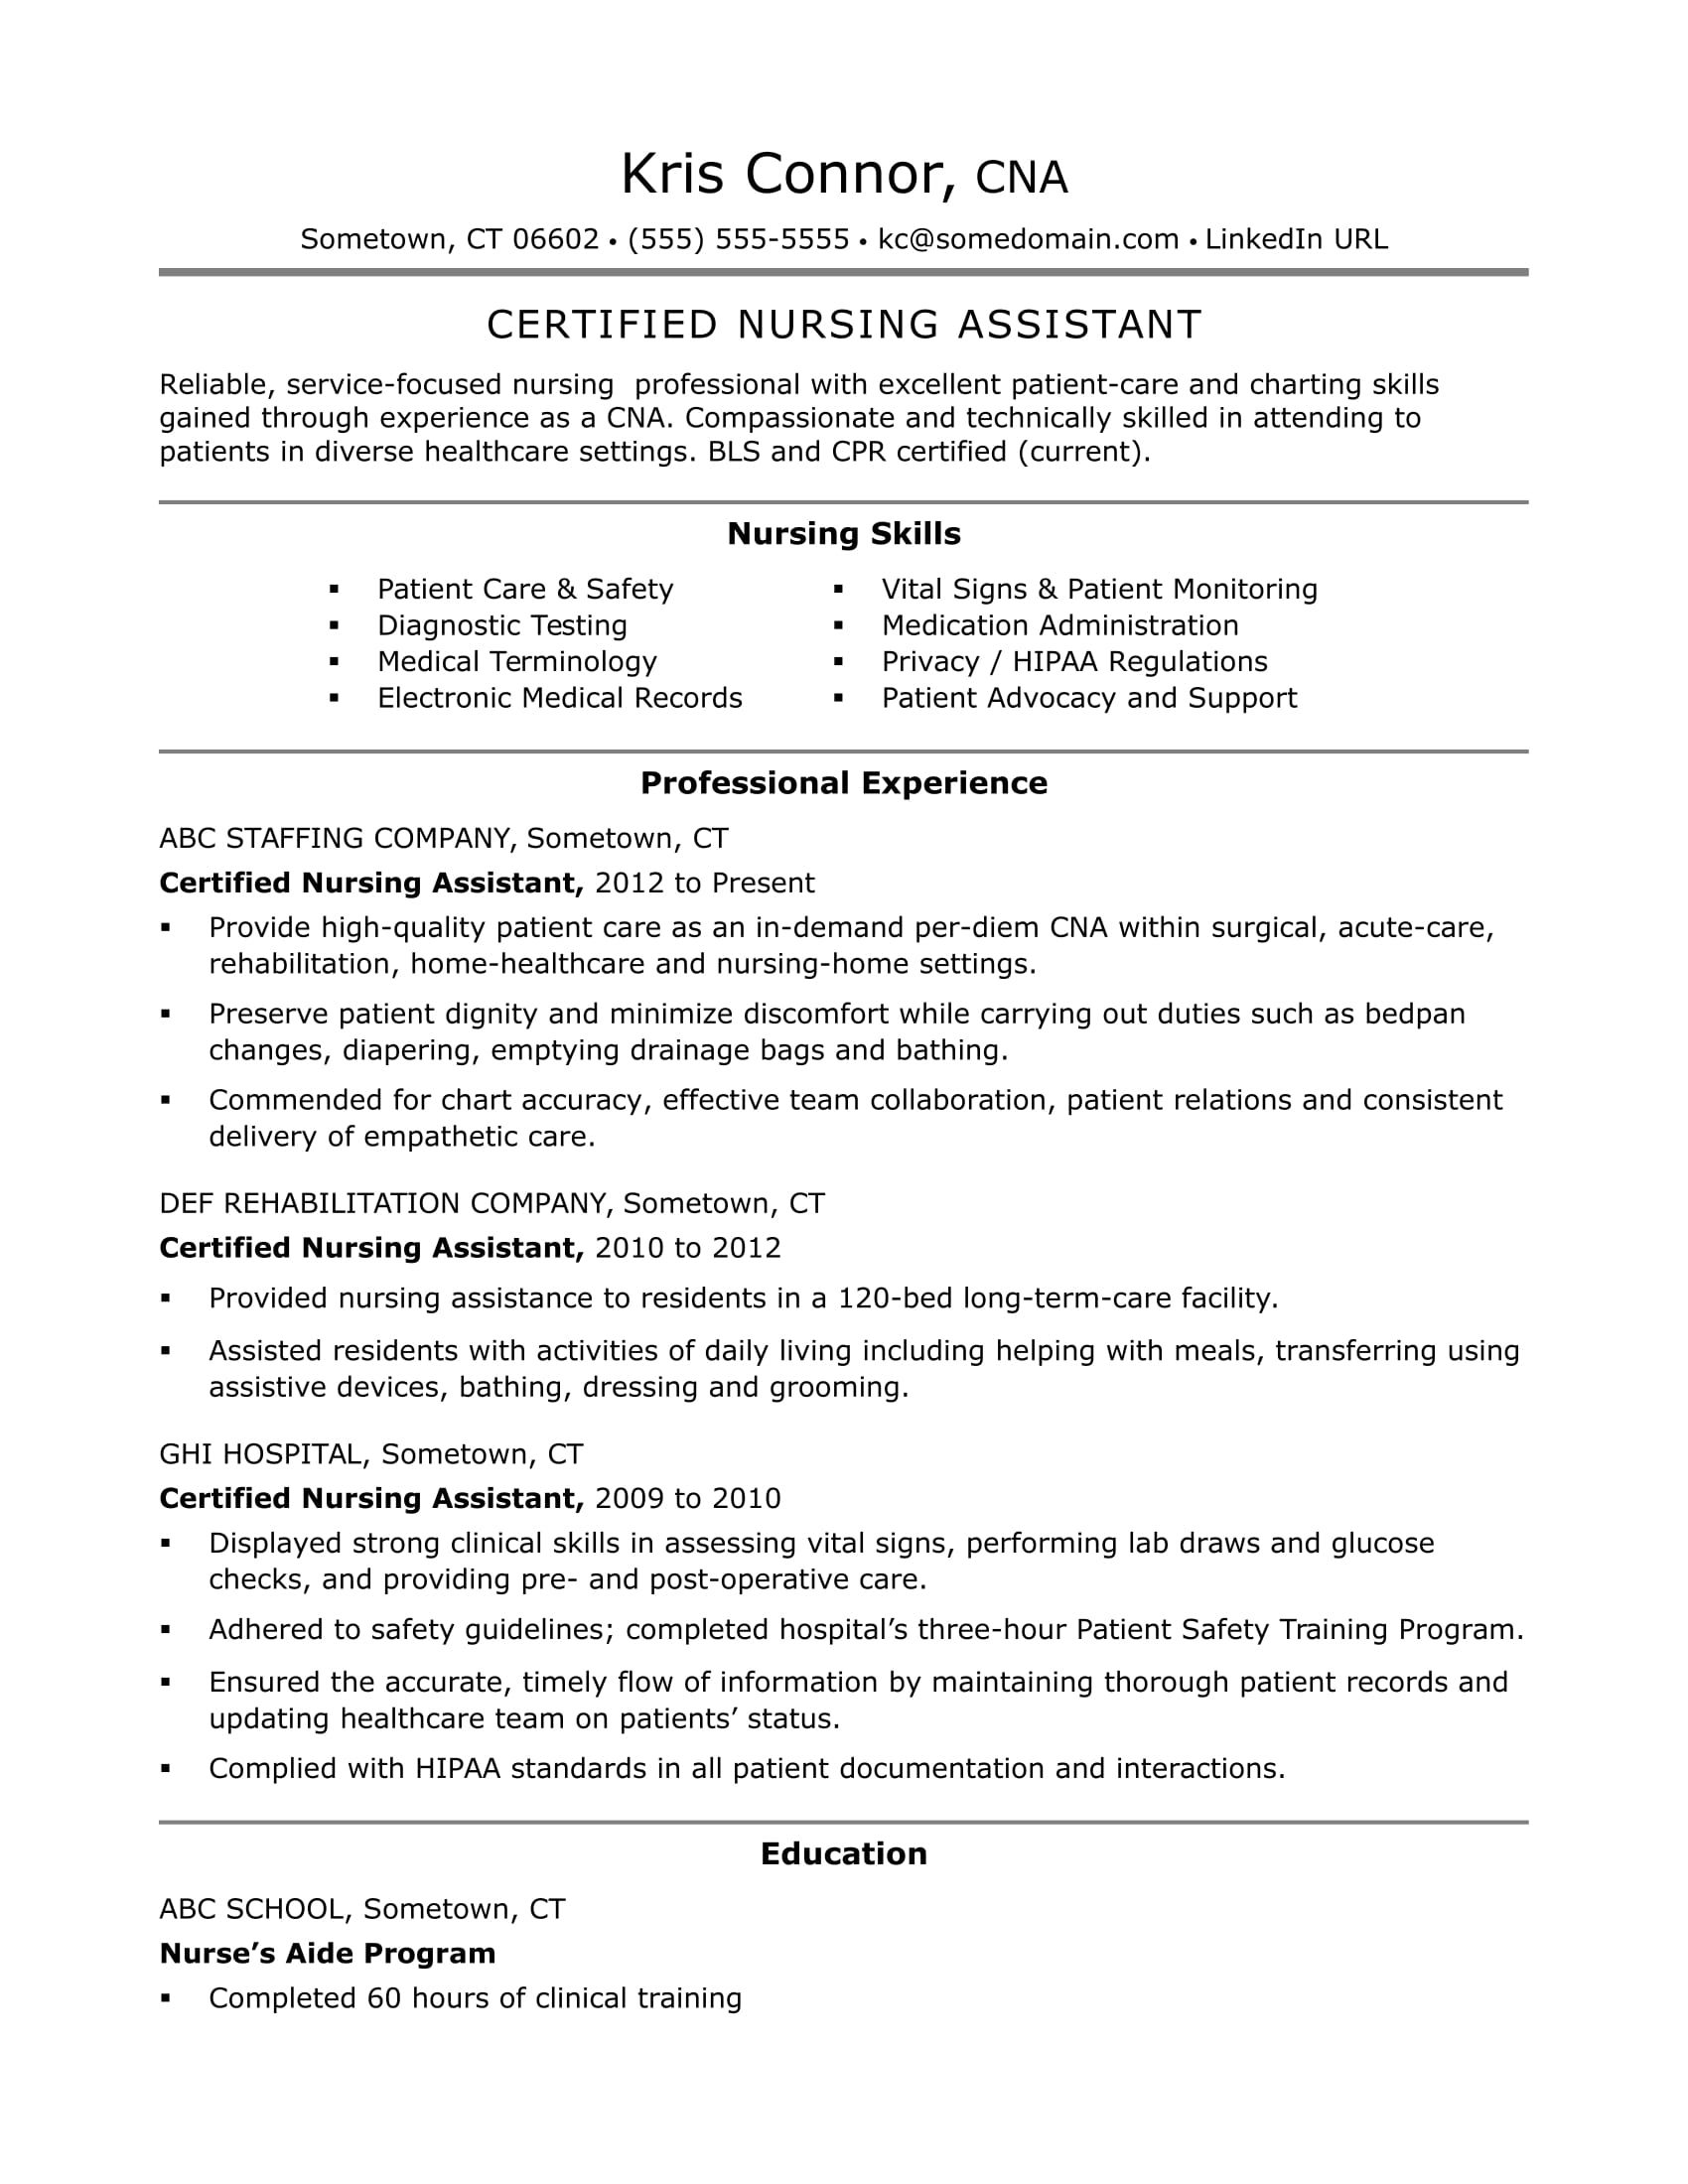 Certified Nursing Assistant Resume Examples Magnificent Cna Resume Examples Skills For Cnas  Monster